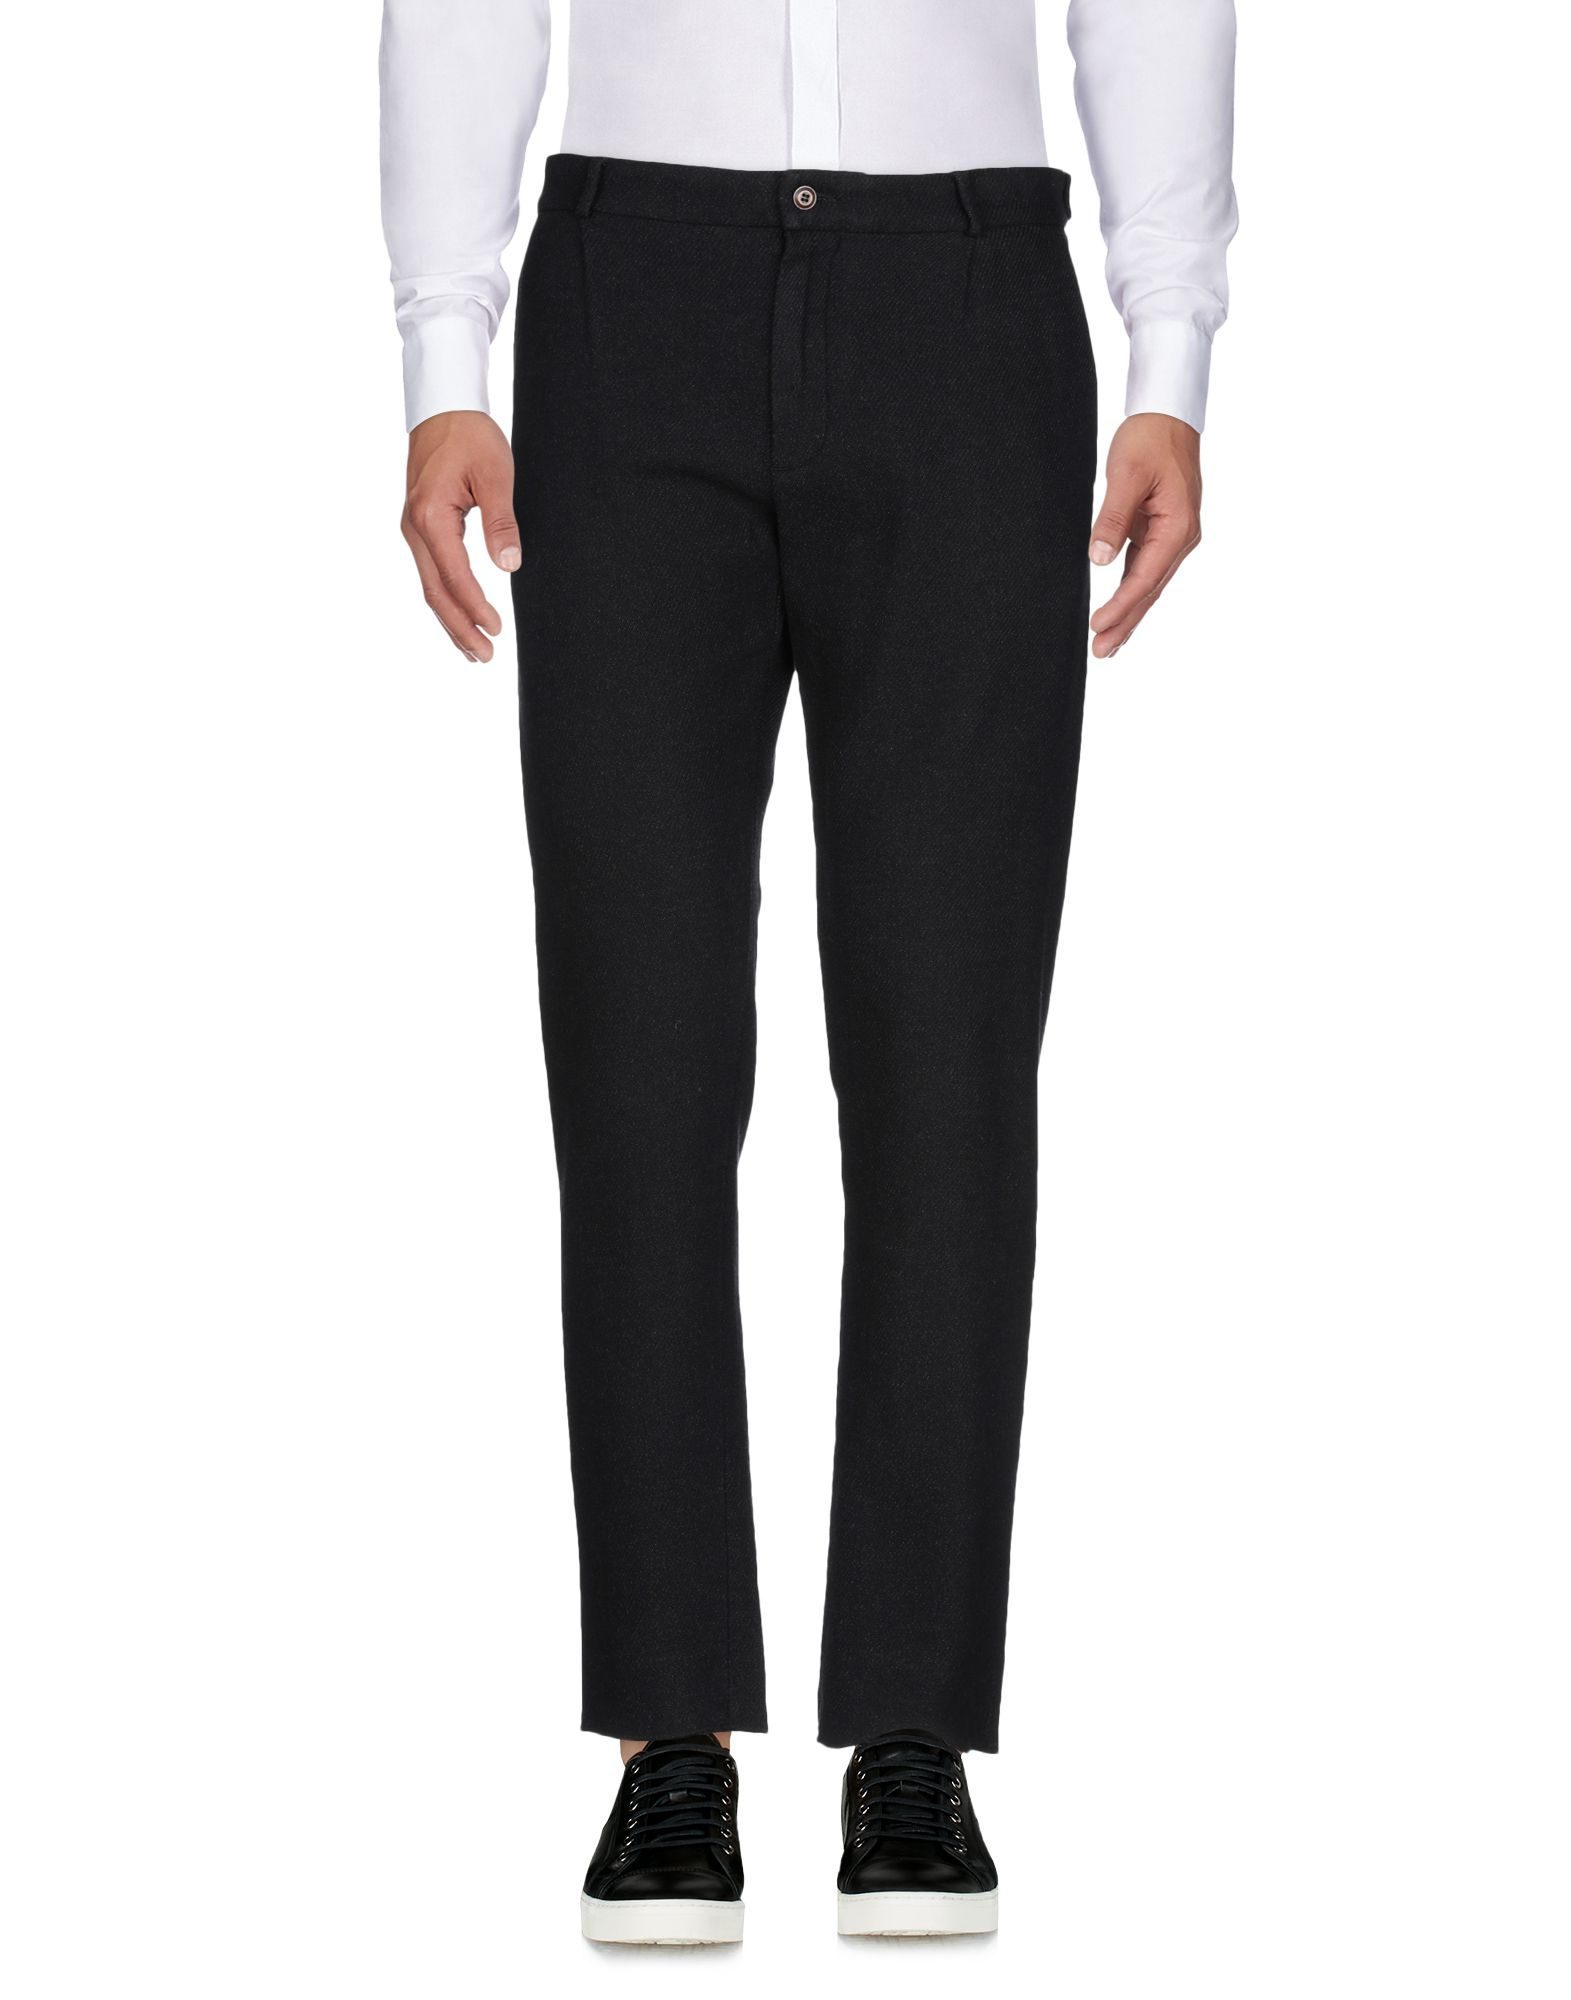 ITINERIS Casual Pants in Black